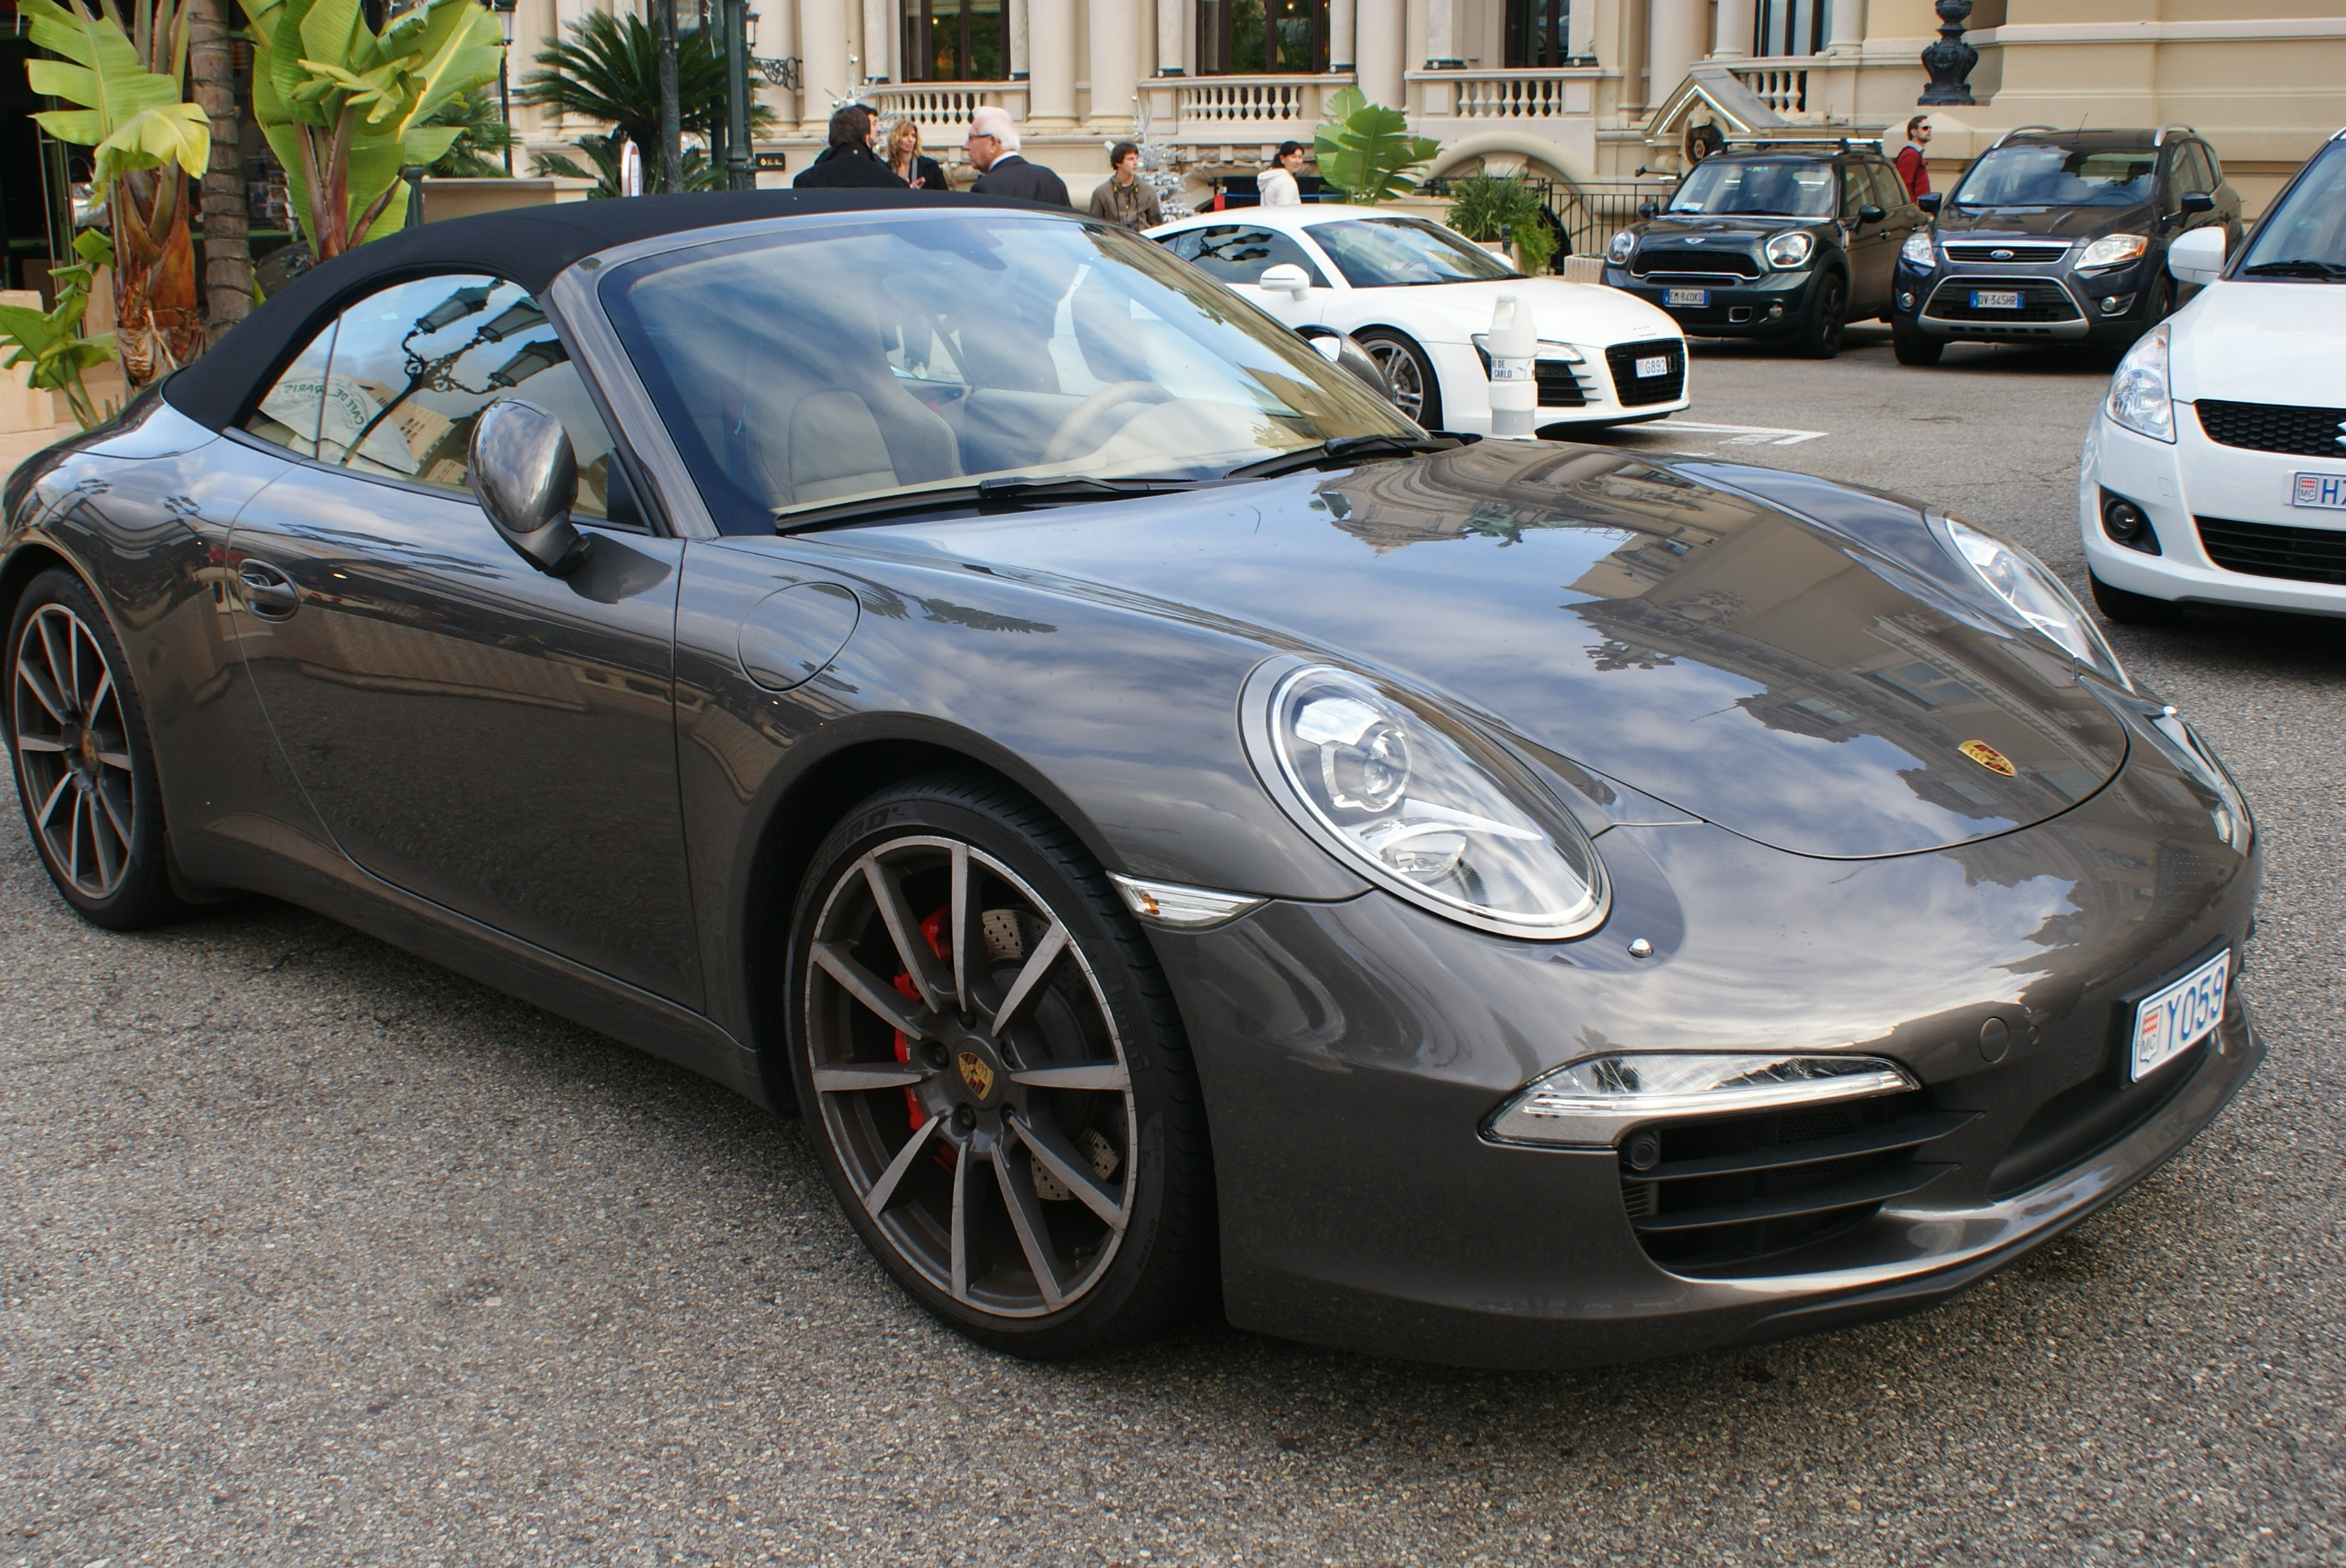 Porsche sales are on the rise in the USA